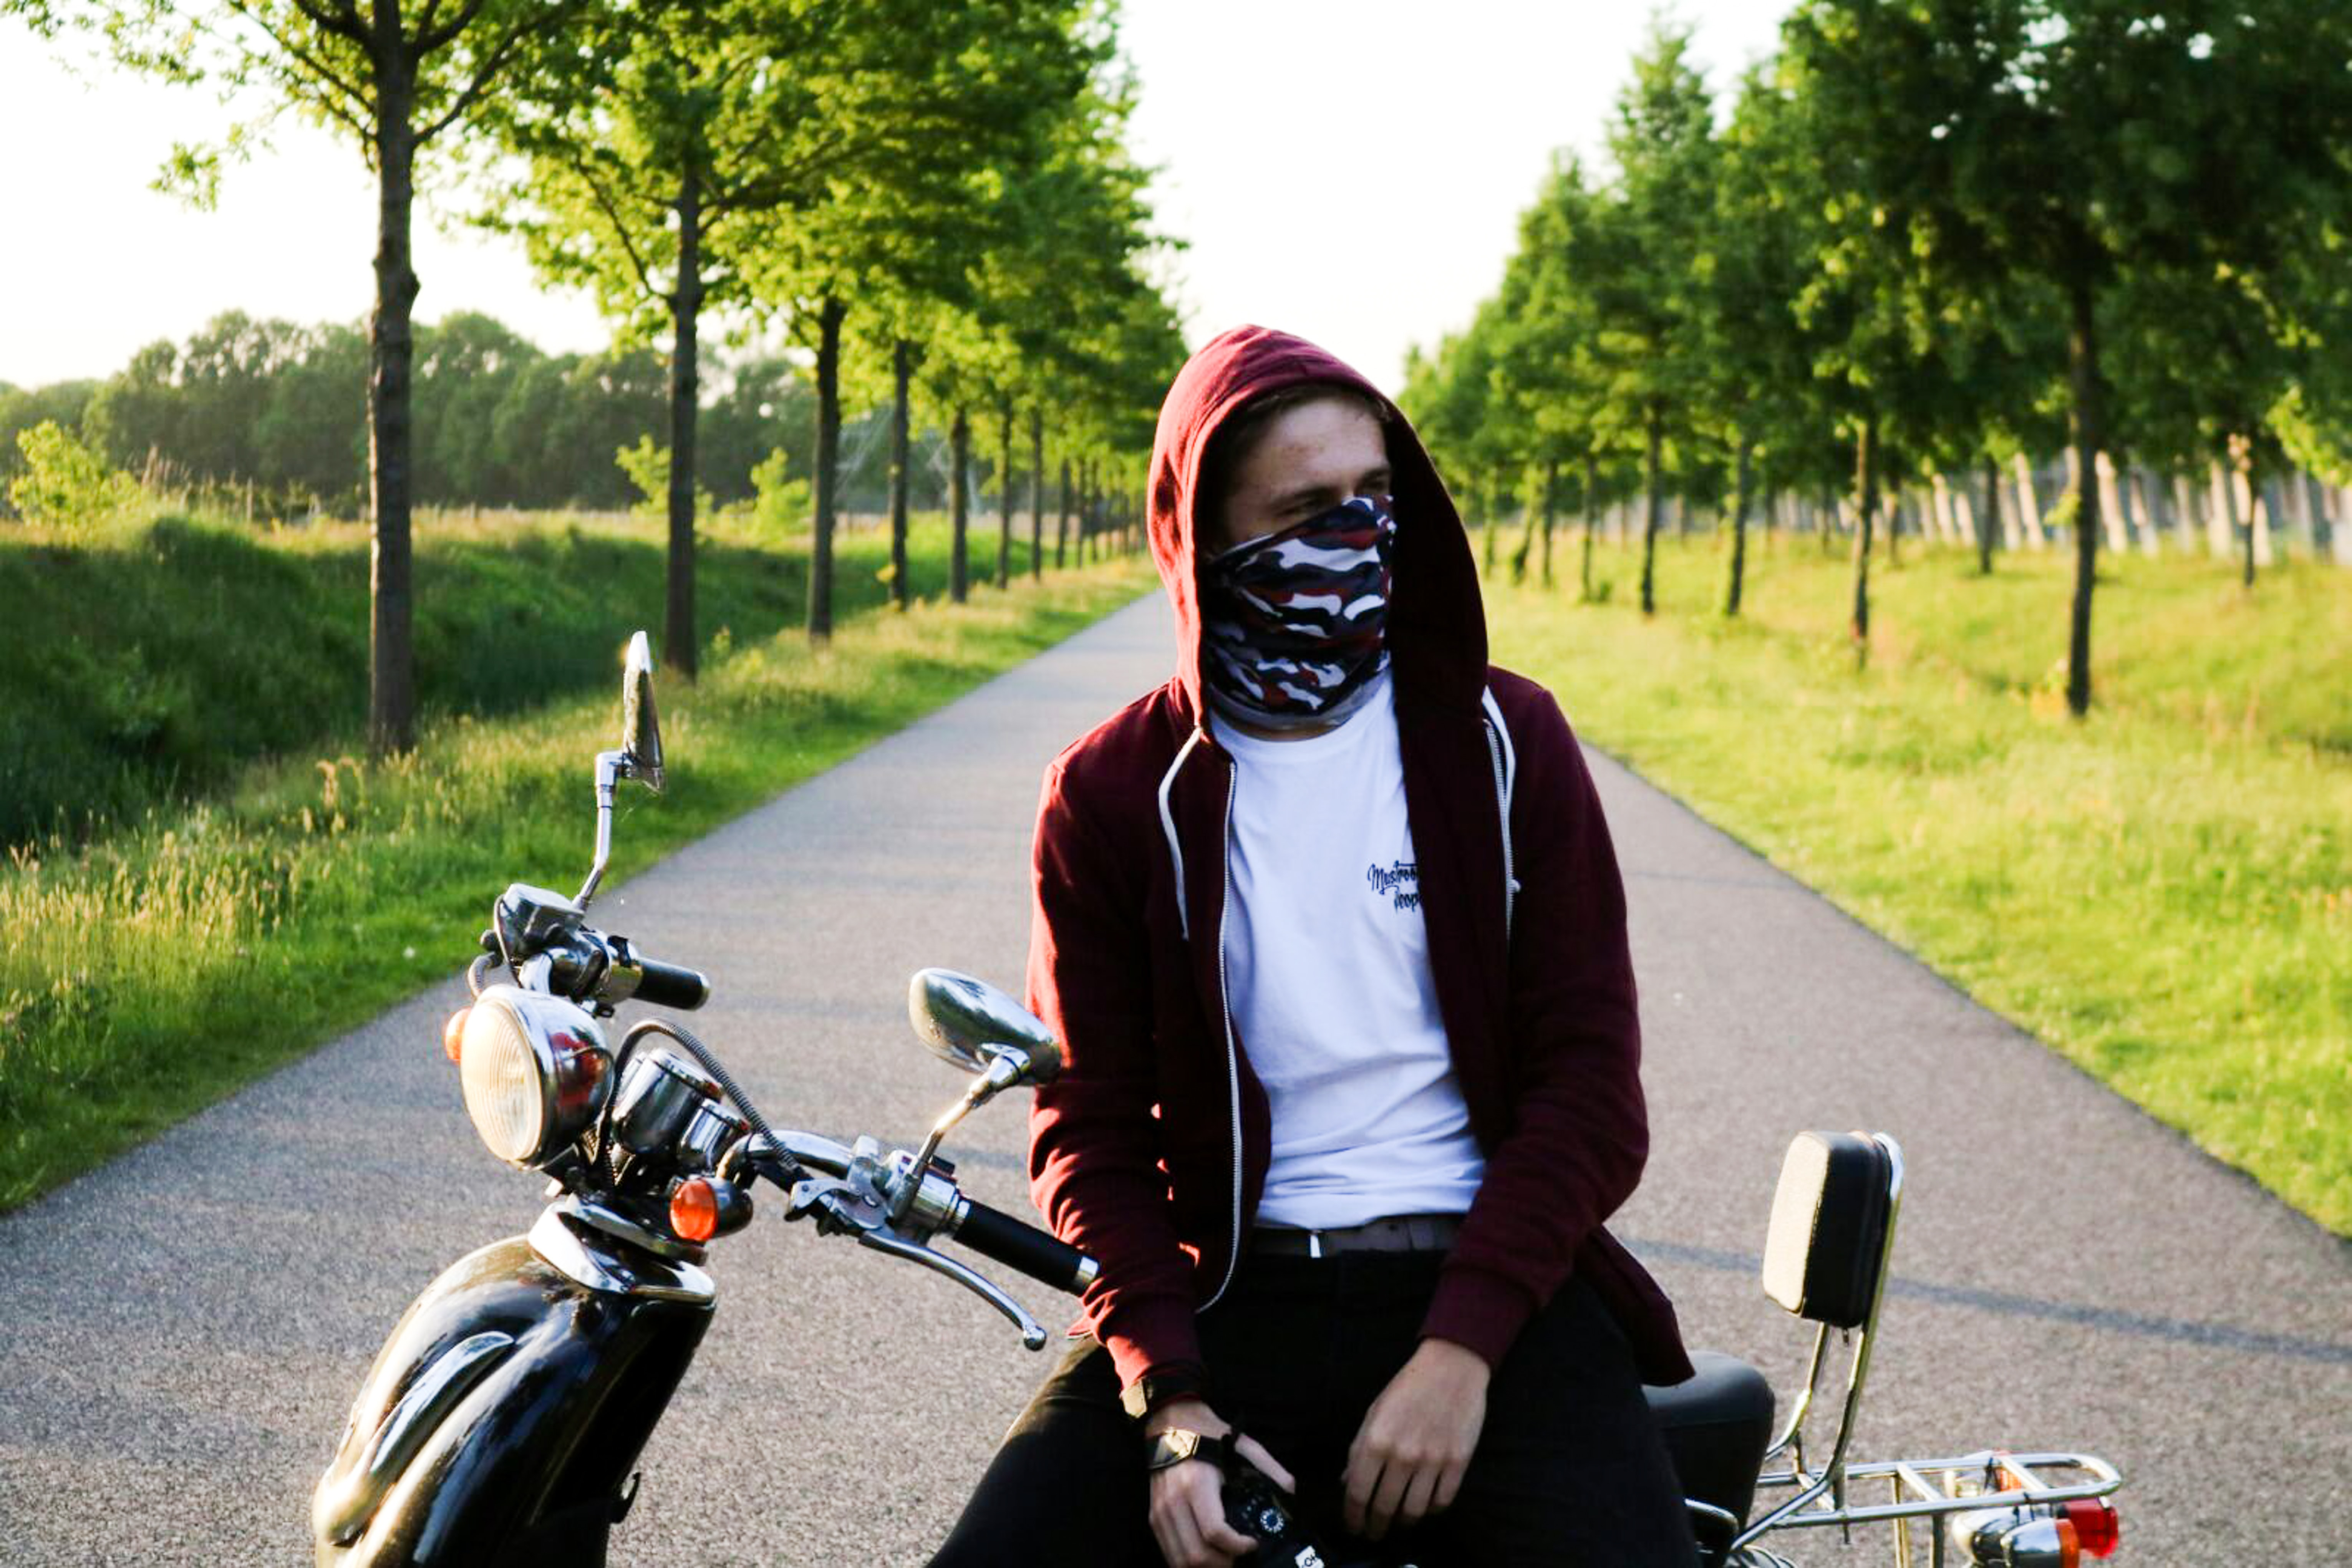 man covering his face with bandanna sitting on motorcycle